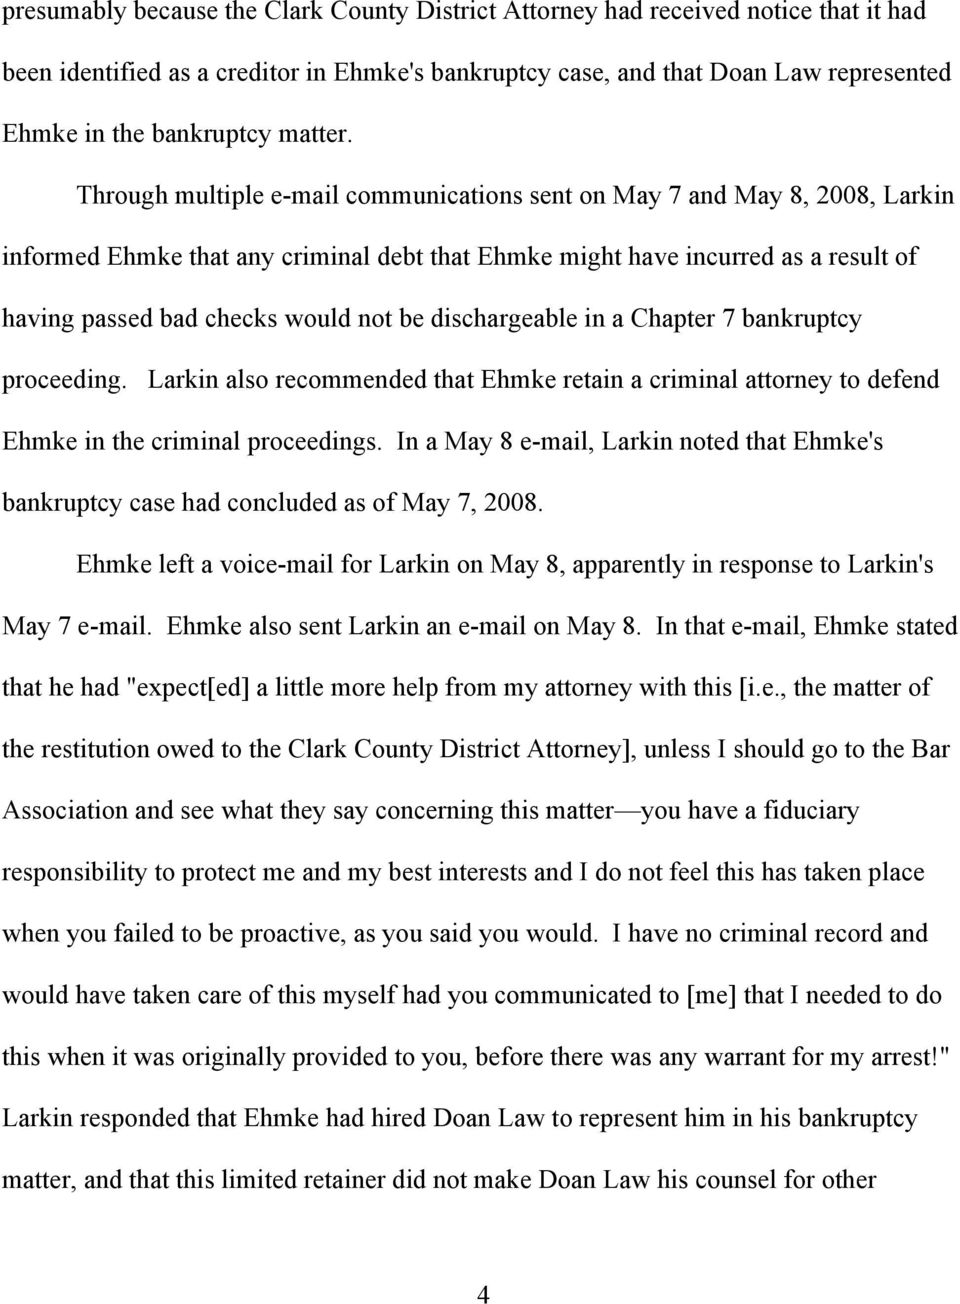 Through multiple e-mail communications sent on May 7 and May 8, 2008, Larkin informed Ehmke that any criminal debt that Ehmke might have incurred as a result of having passed bad checks would not be